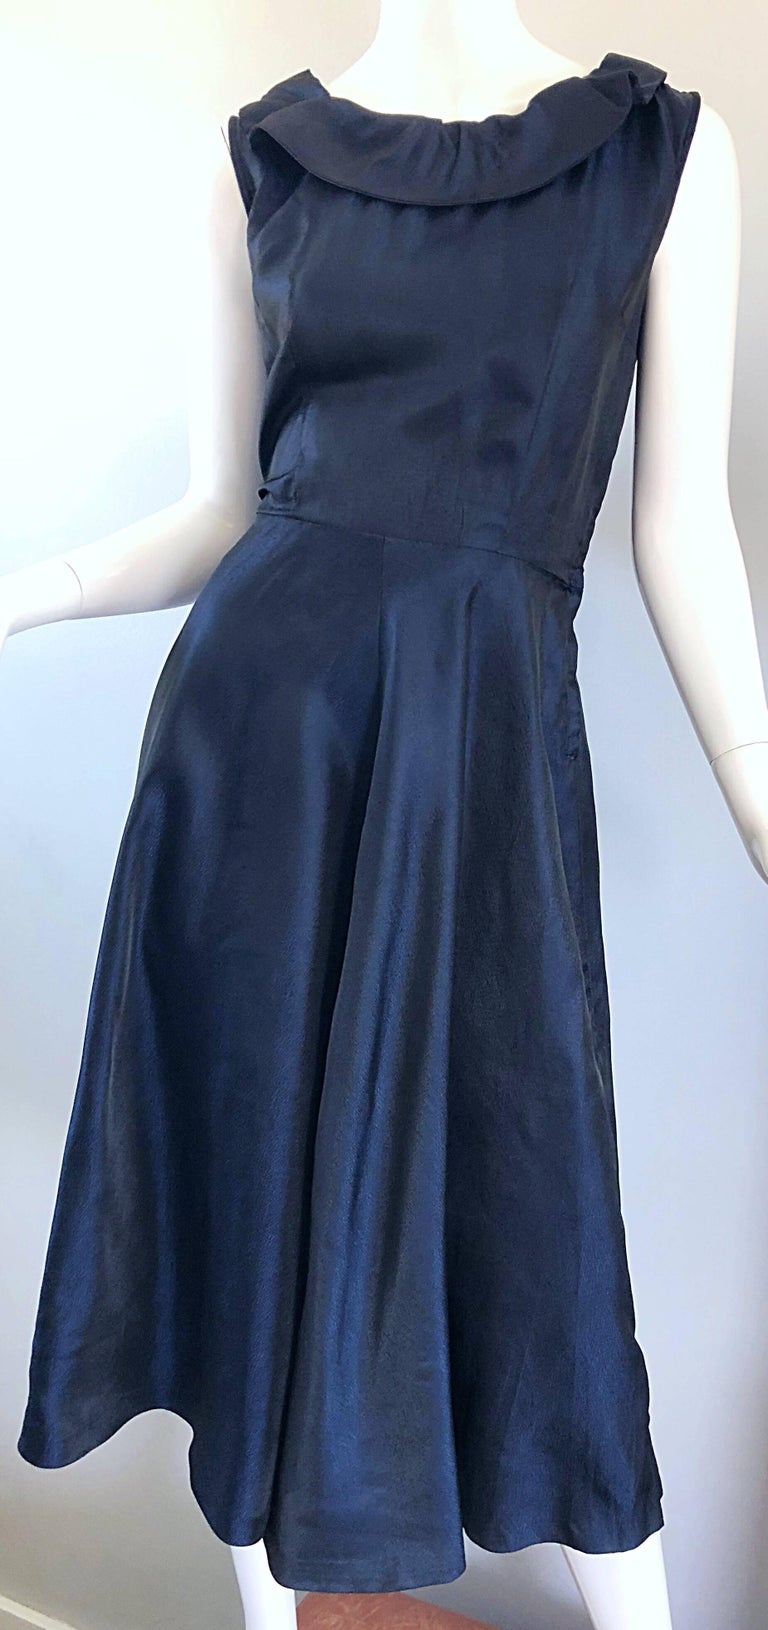 1950s Navy Midnight Blue Fit n ' Flare Vintage 50s Demi Couture Silk Dress For Sale 7